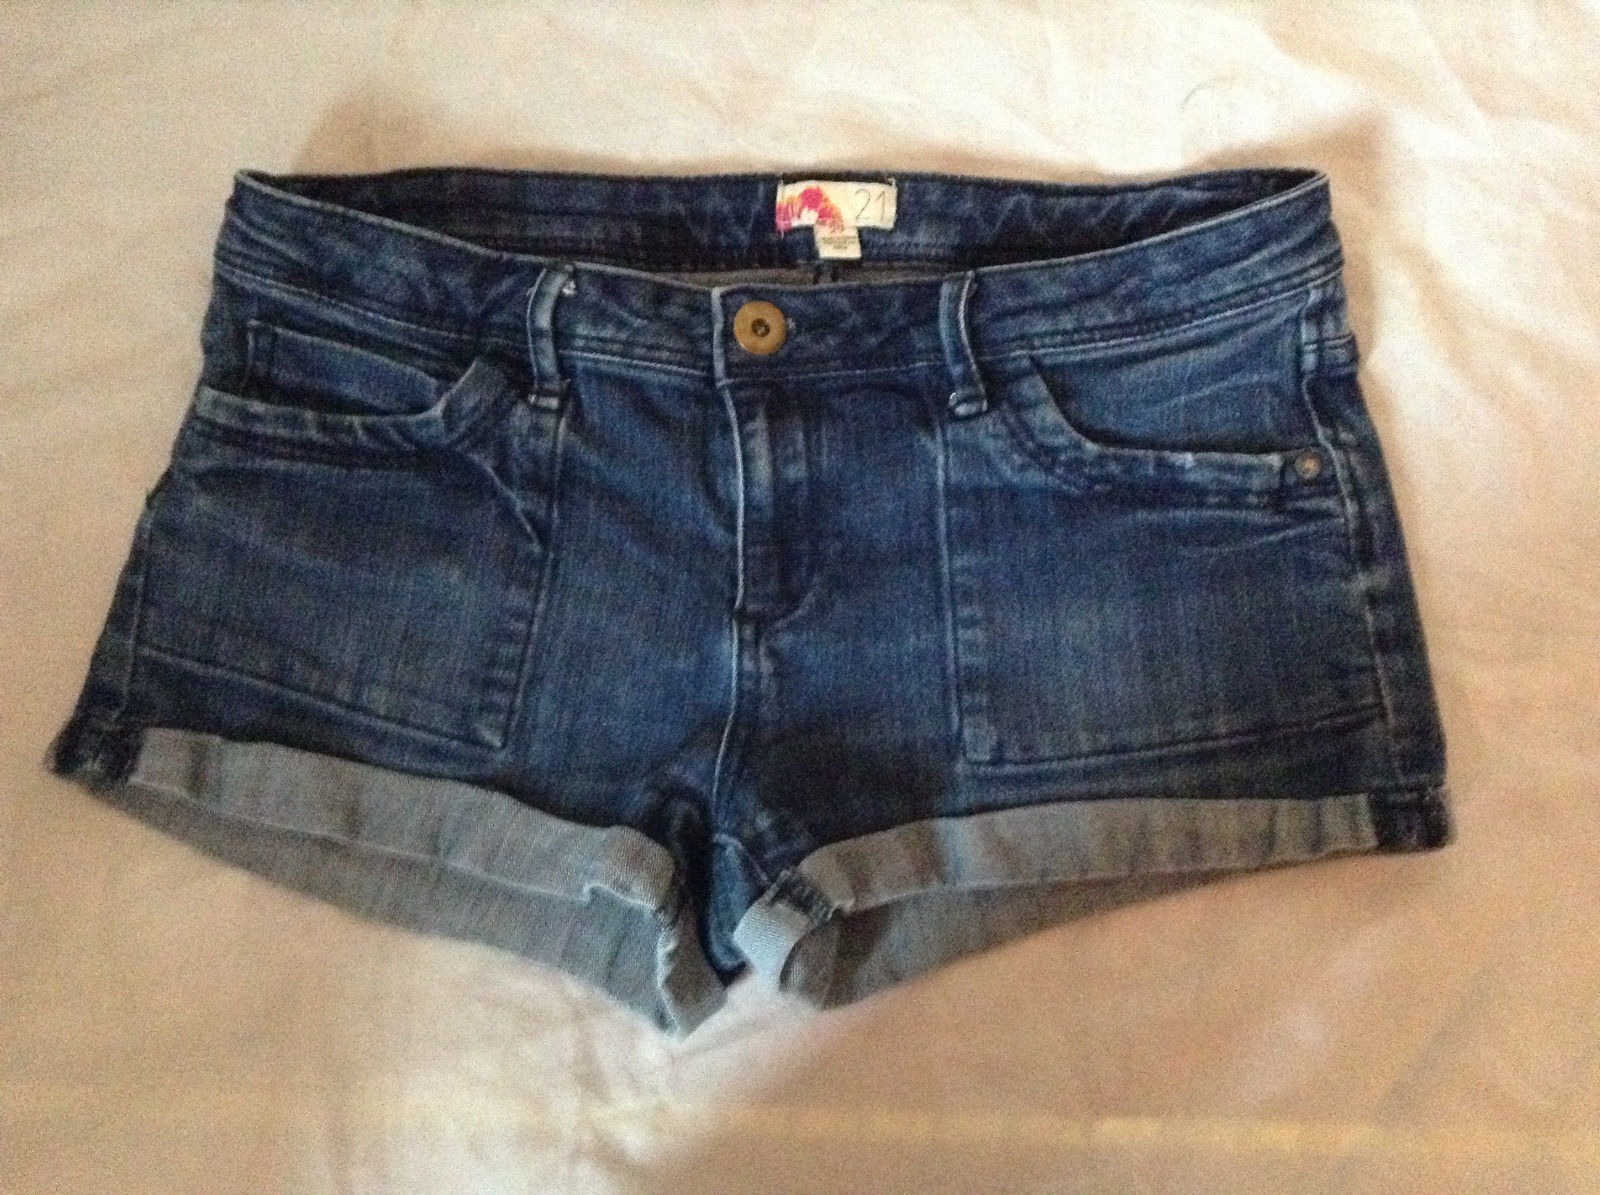 Forever 21 Jean Shorts Cuffed Bottom Size 29